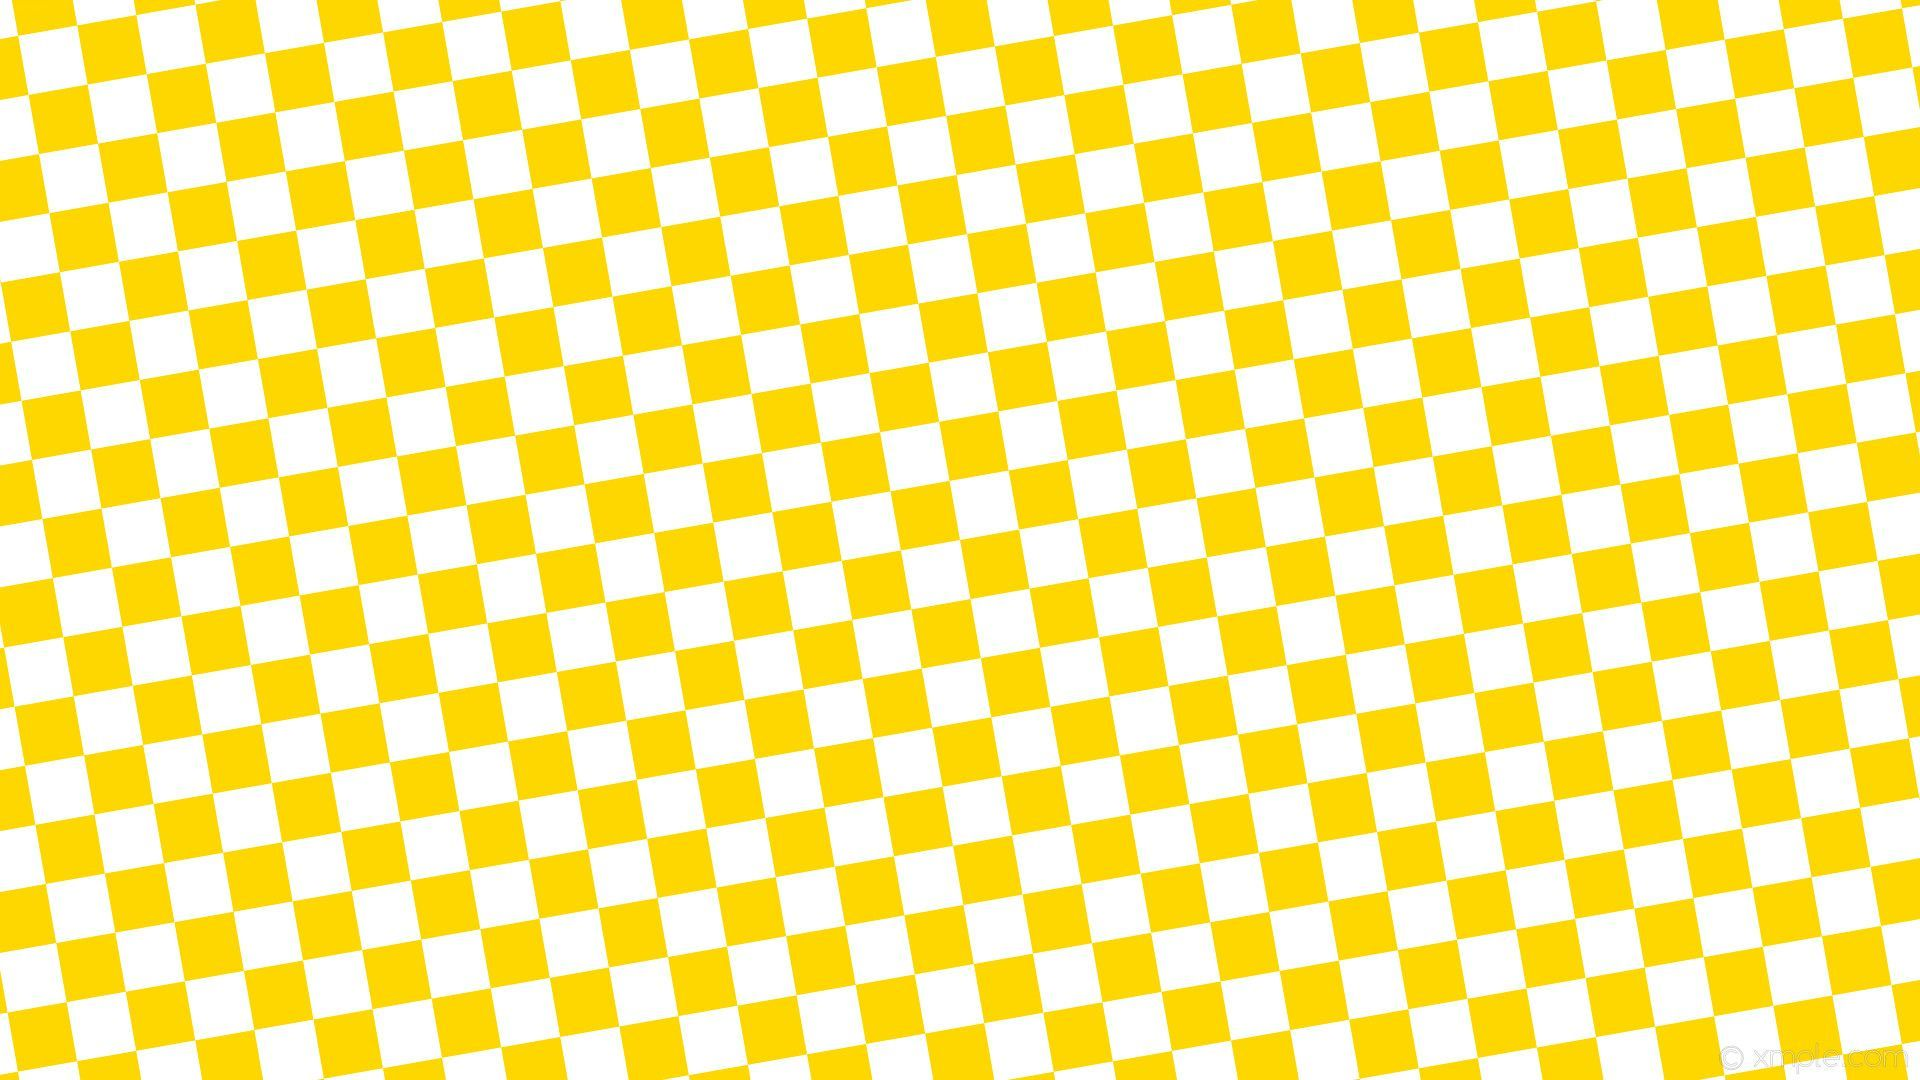 Yellow Aesthetic Wallpaper Iphone In 2020 Cute Desktop Wallpaper Yellow Aesthetic Computer Wallpaper